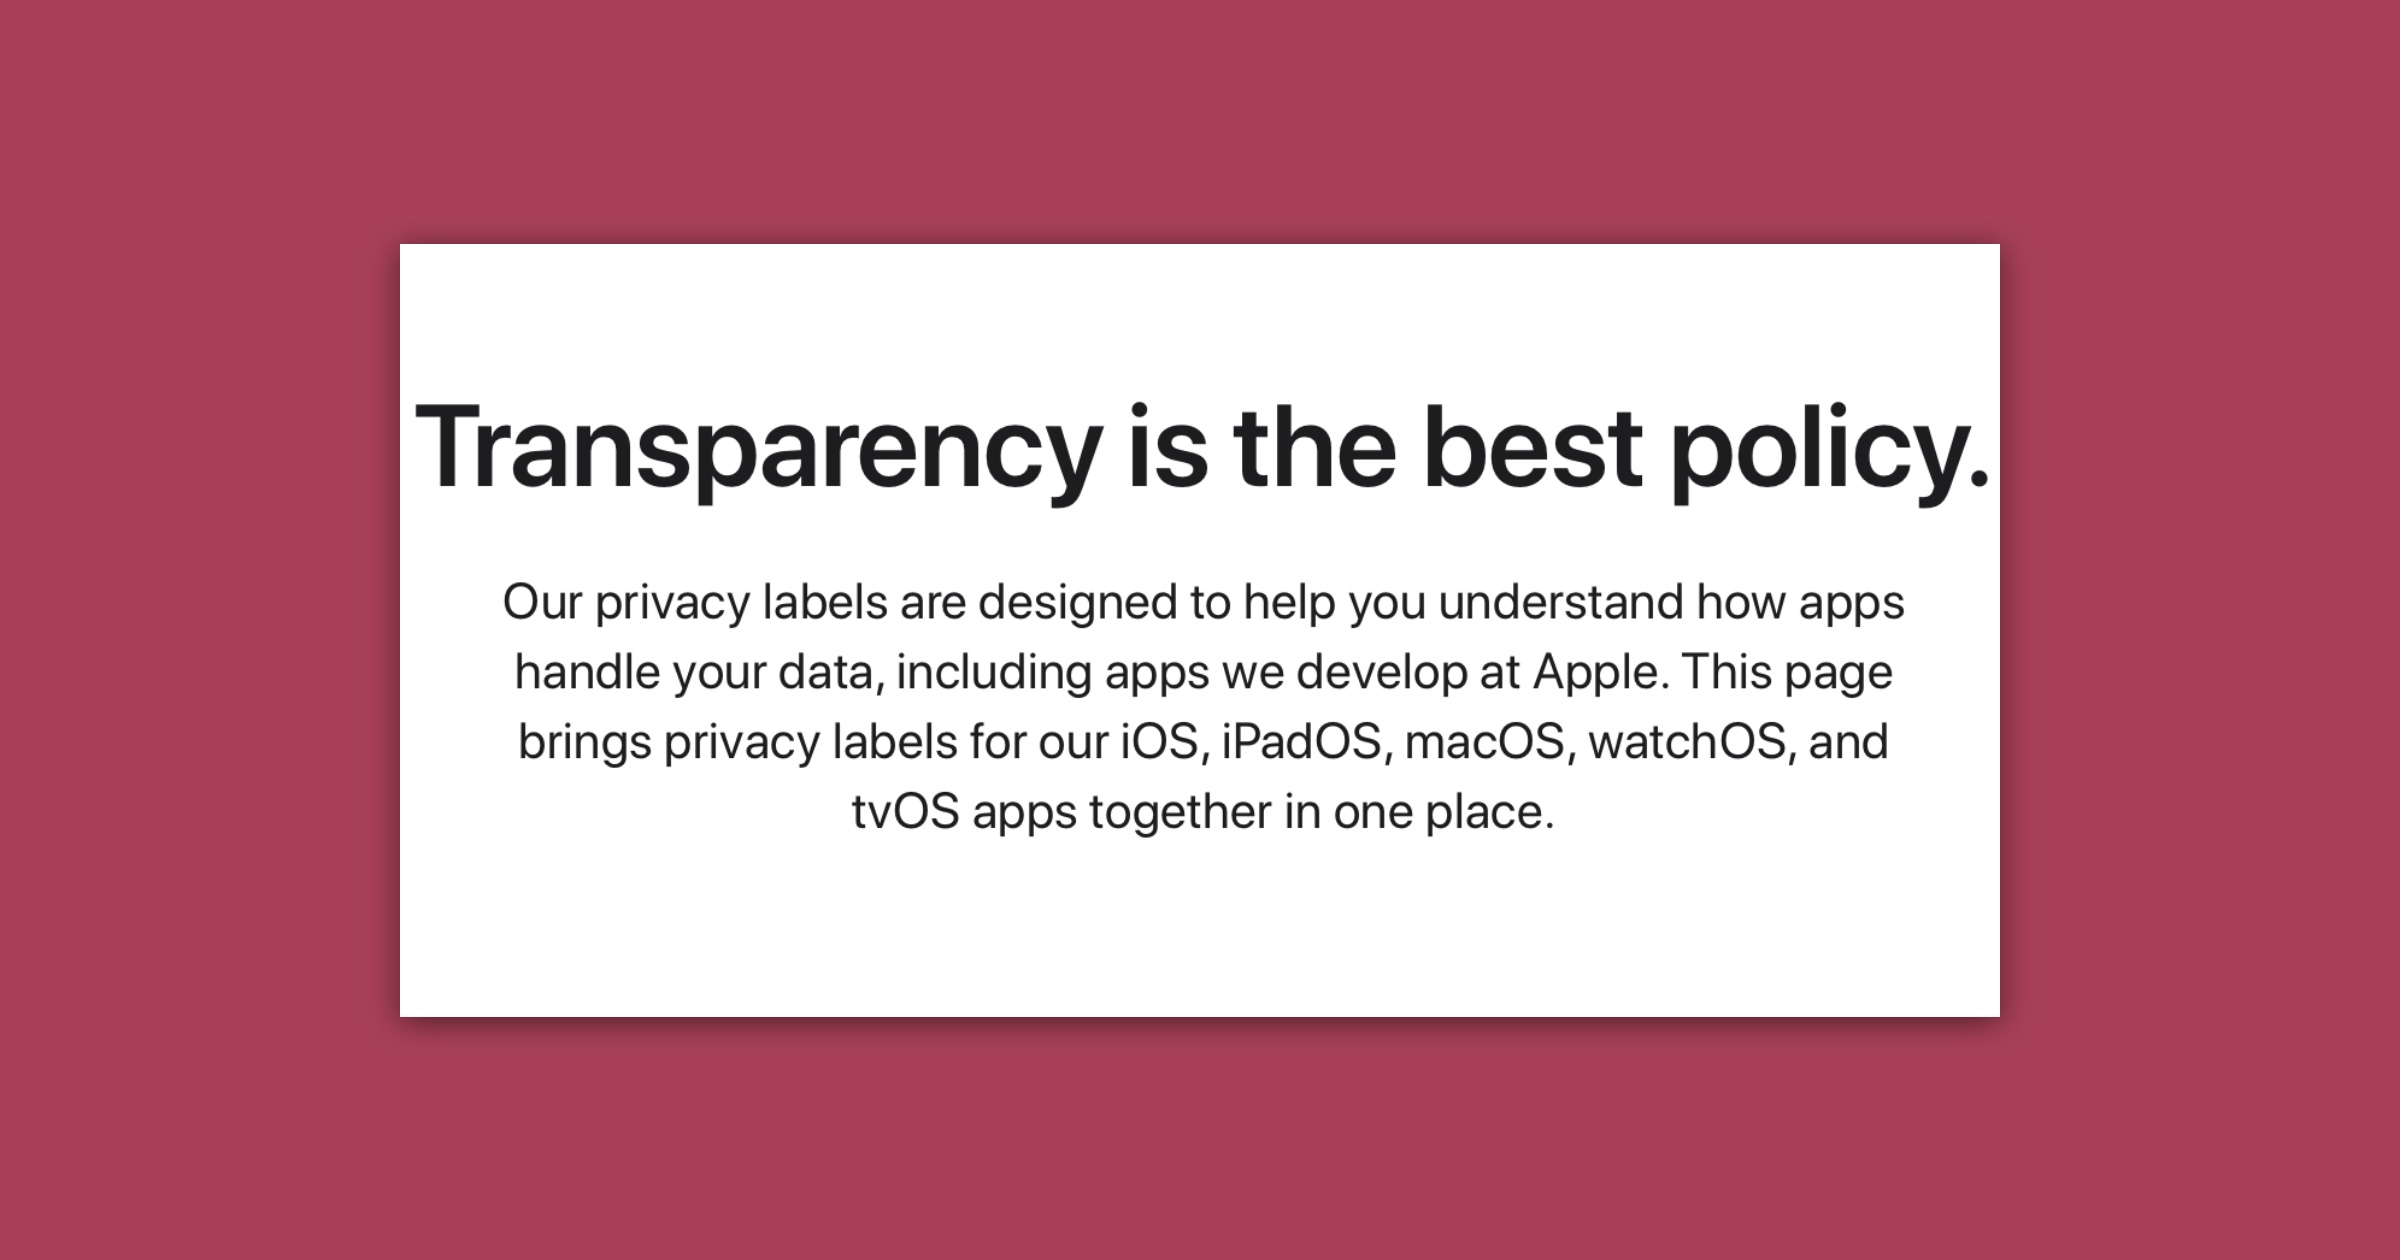 Apple privacy labels web page